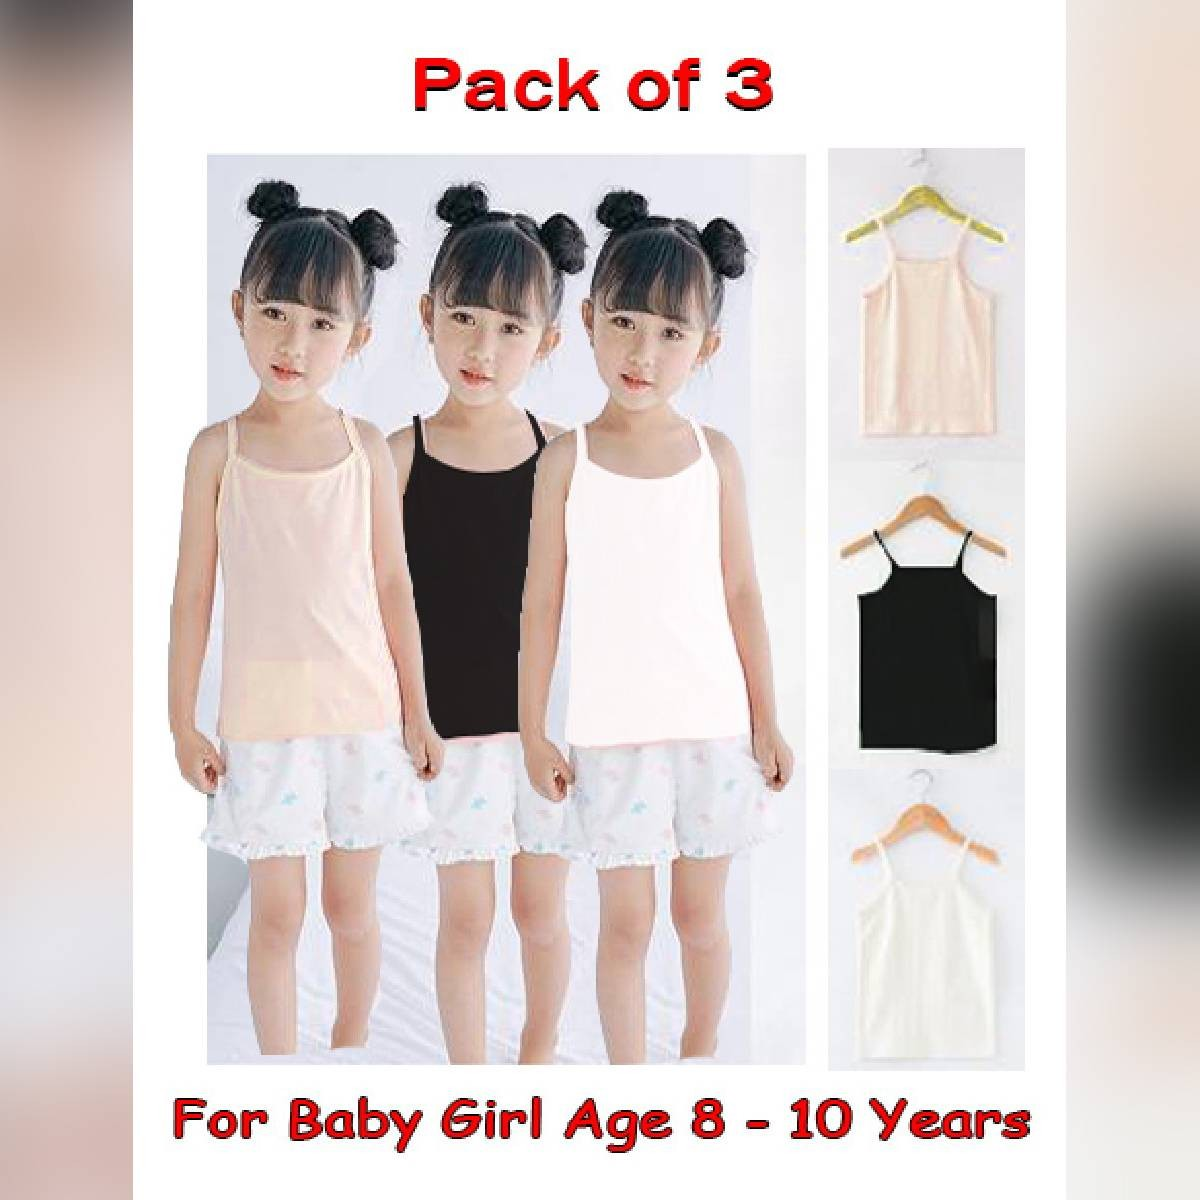 Pack of 3 - Medium Size Camisole / Shameez For Girls Age Between 11 - 14 Years  Length =20  Width = 12